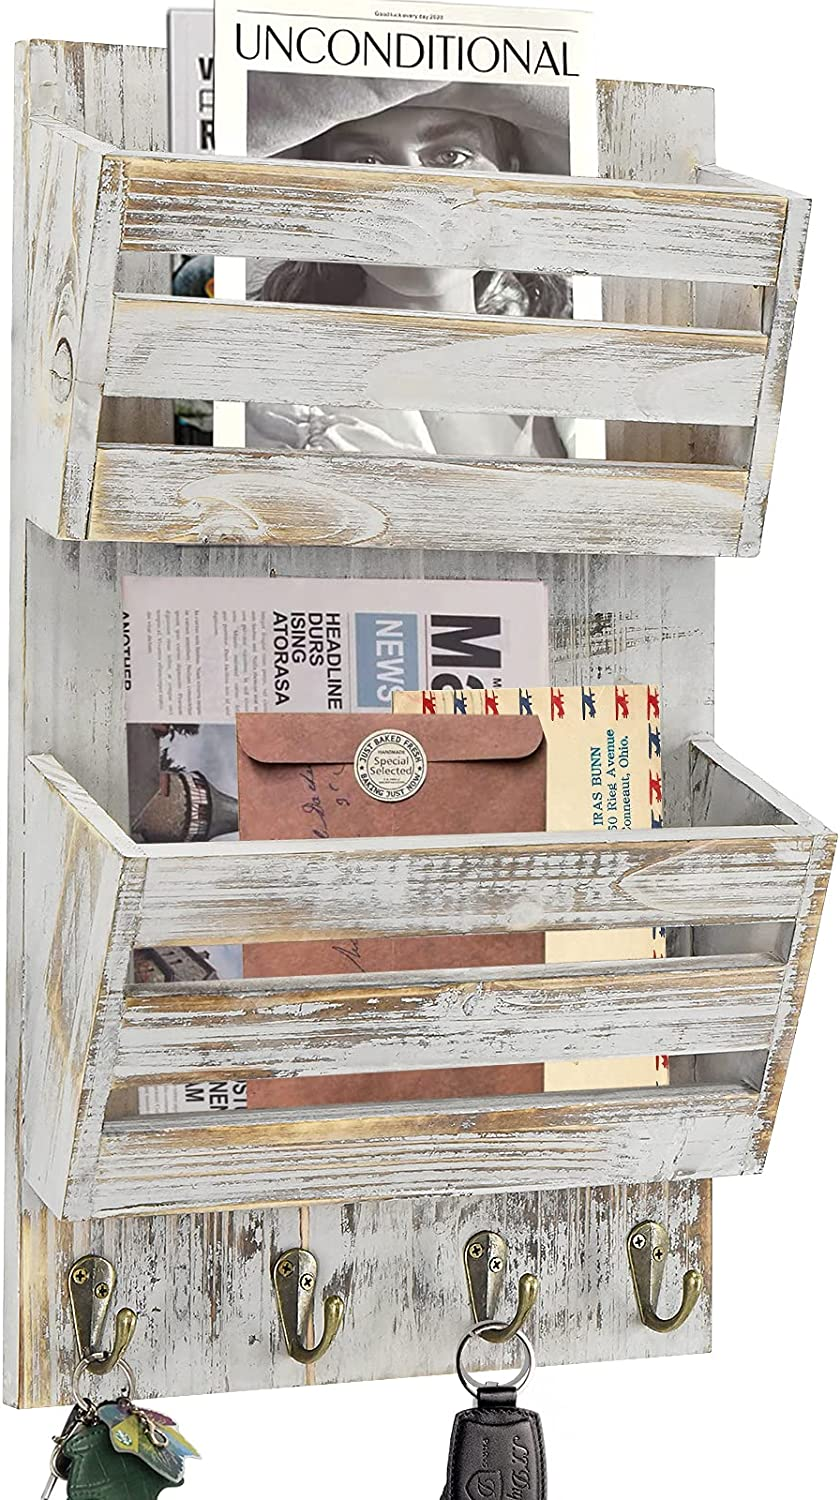 Rustic Mail Organizer for Wall, Hanging Mail Holder Wall Mounted with Key Hooks, Key Holder for Wall with Mail Sorter, Bill Magazine Holder for Entryway Hallway Kitchen Gray